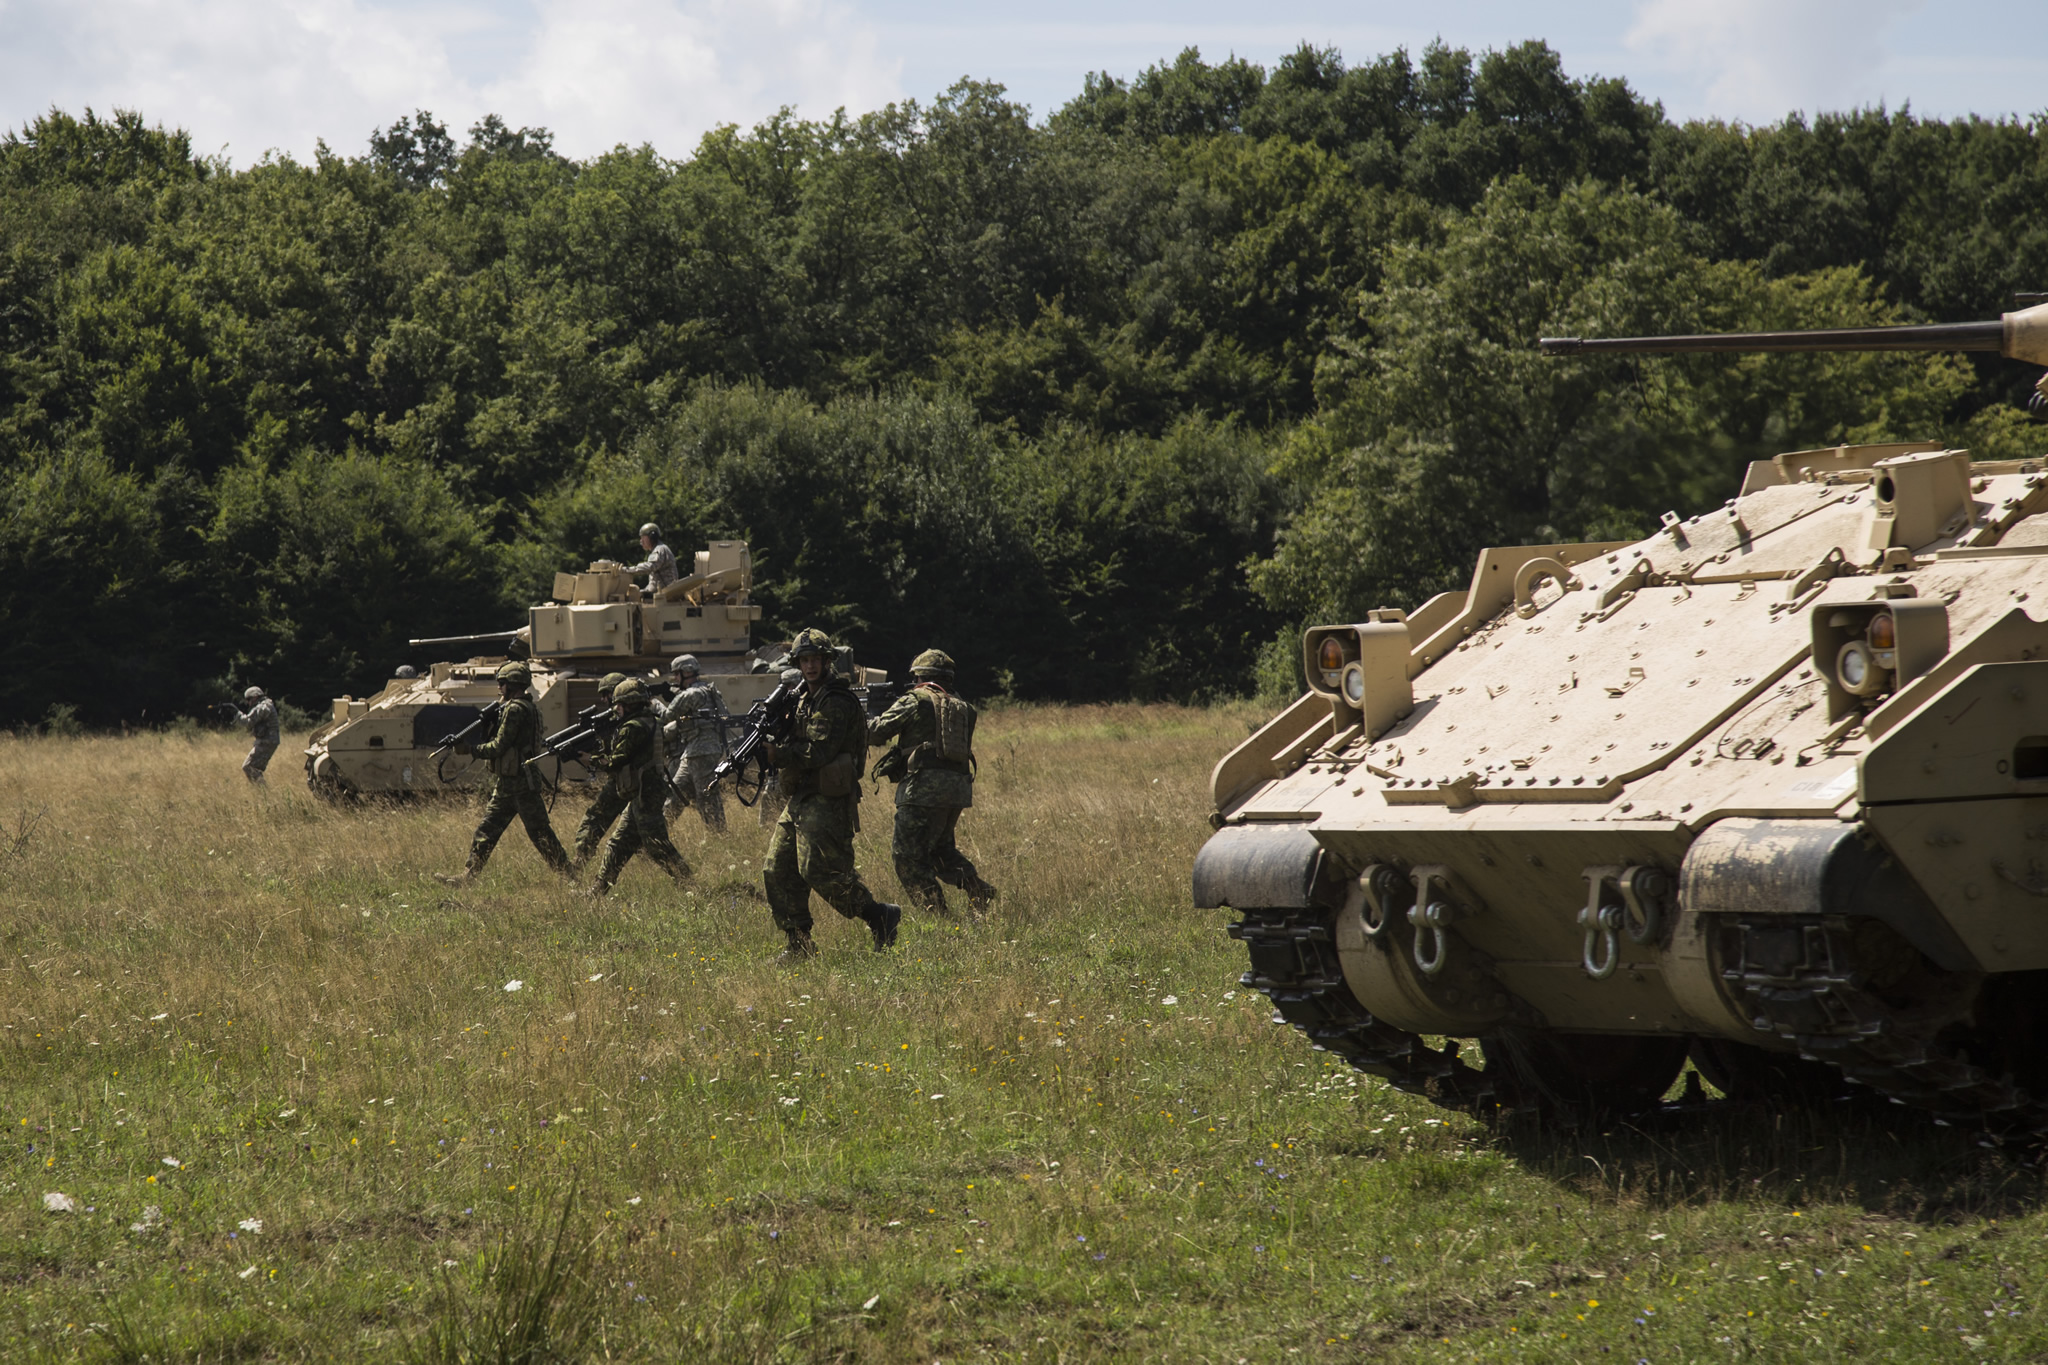 Soldiers walk in a field alongside two tanks.